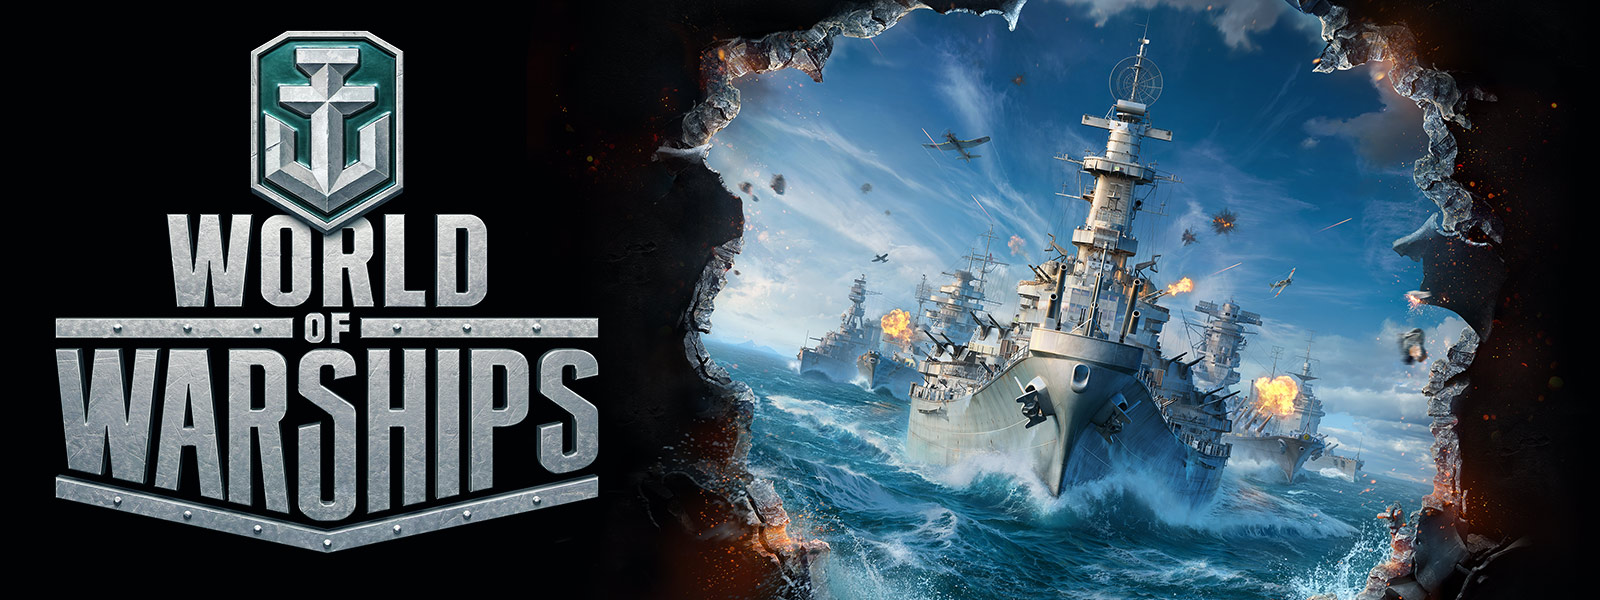 World of Warships, buques de guerra y portaviones disparan en el mar